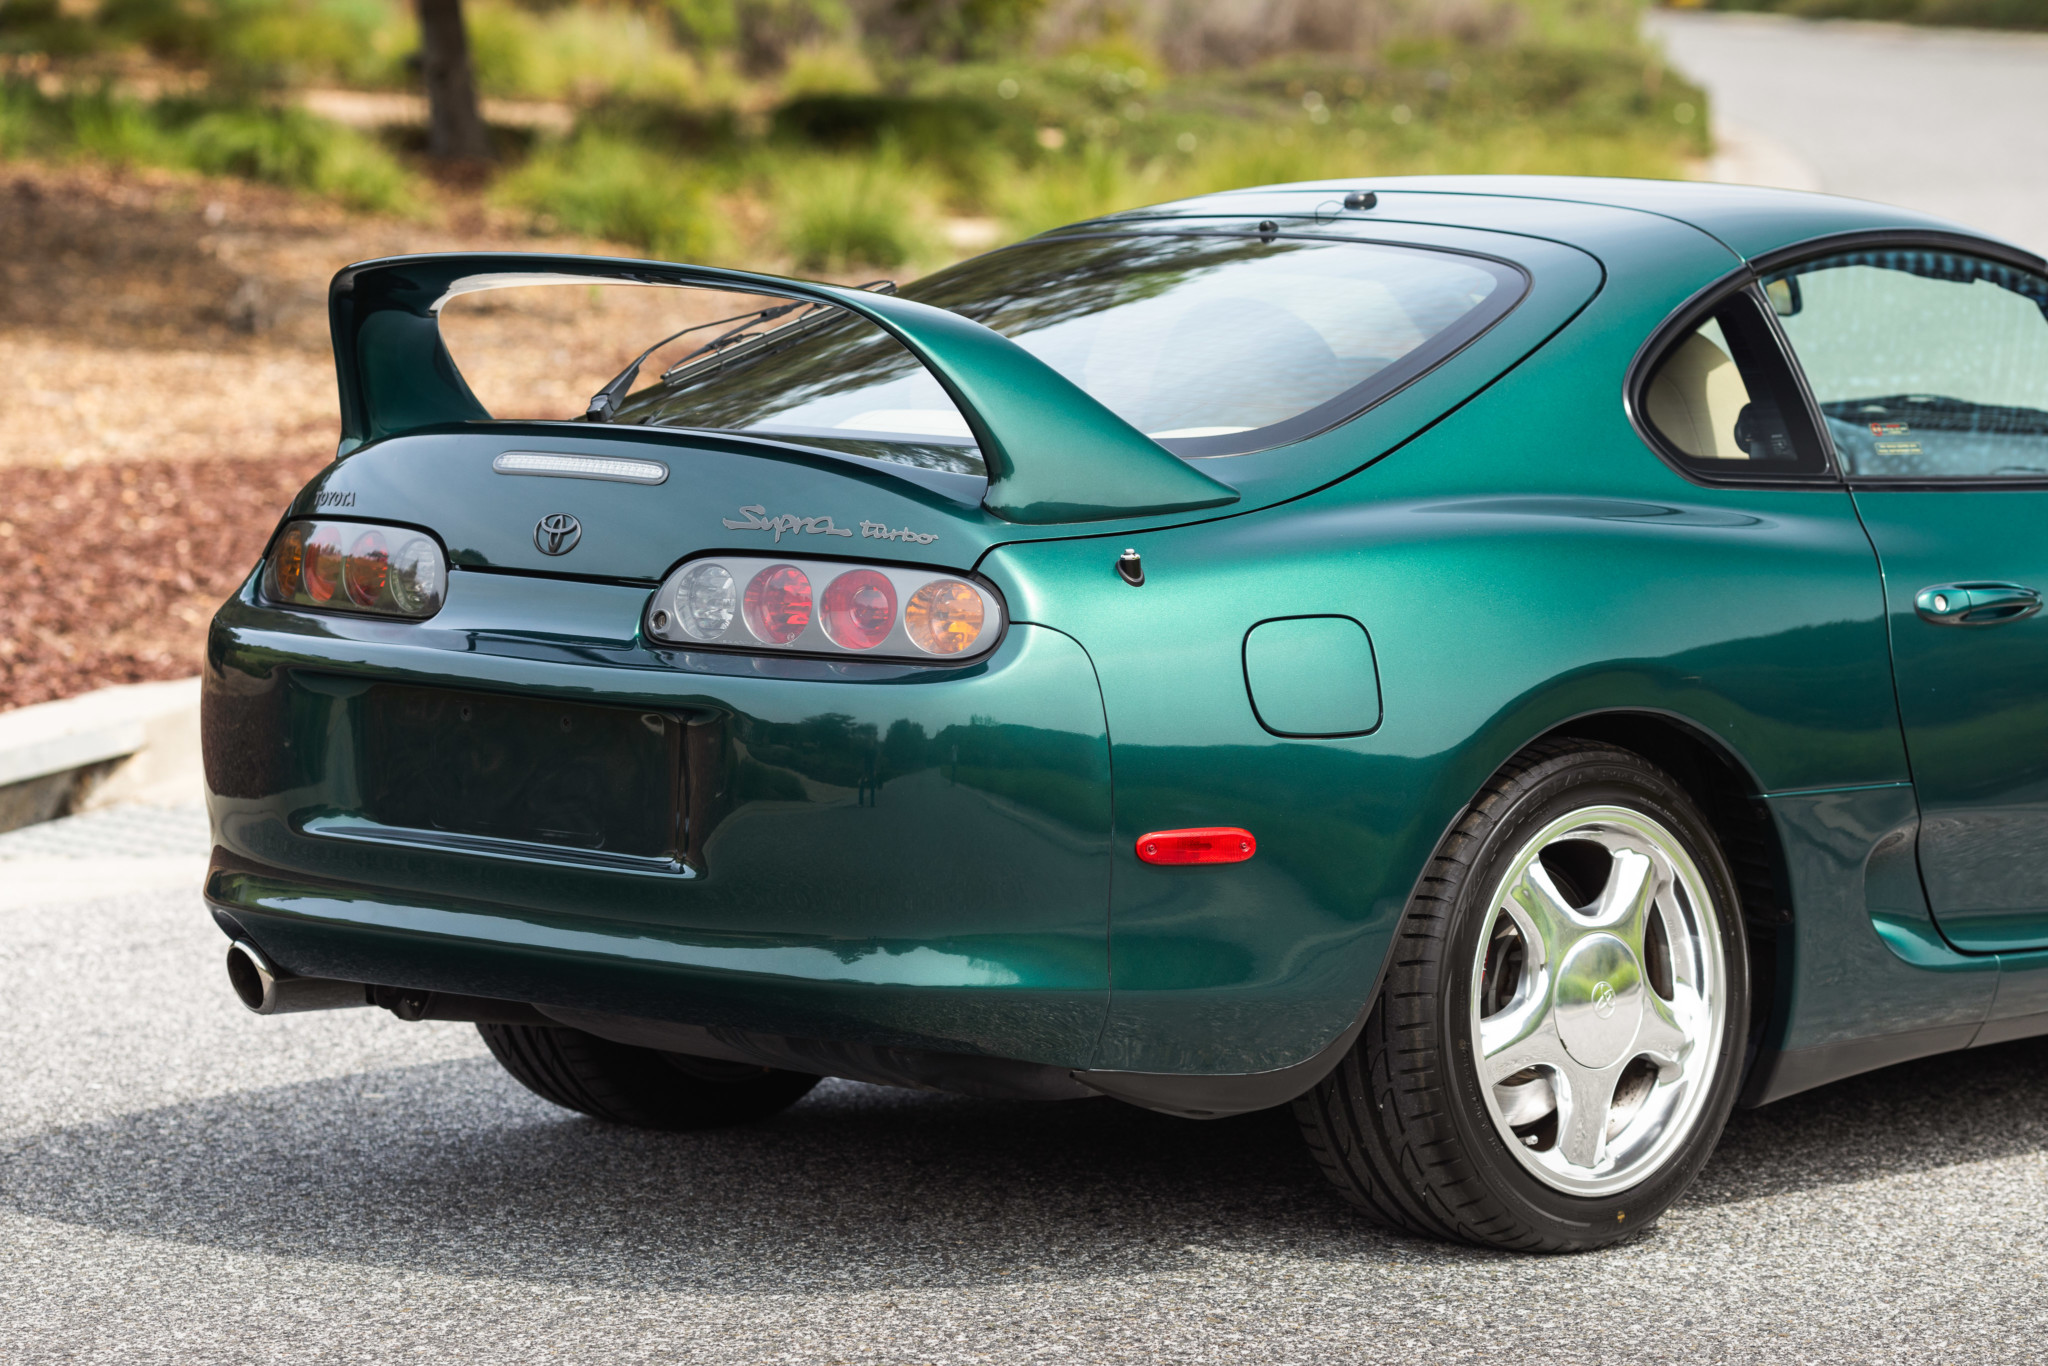 Toyota-Supra-Twin-Turbo-1997-sale-16